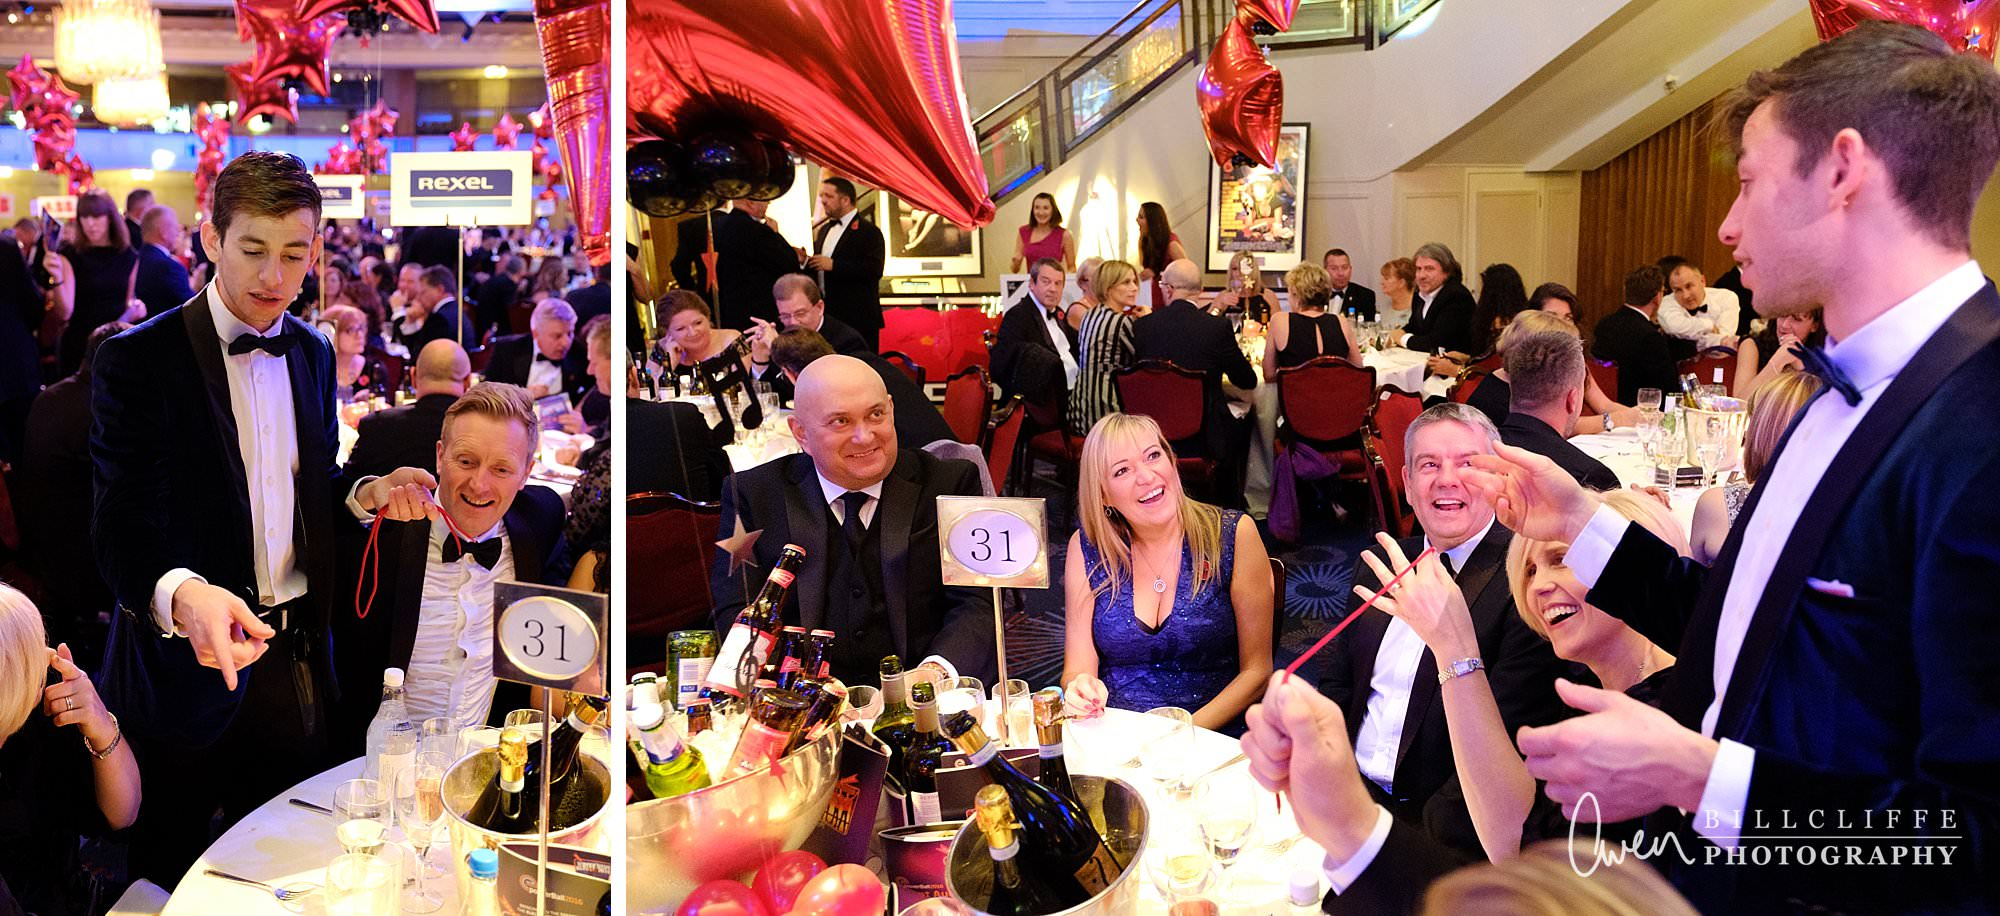 london event photographer park lane pb 013 - A Luxury Ball at Grosvenor House Park Lane